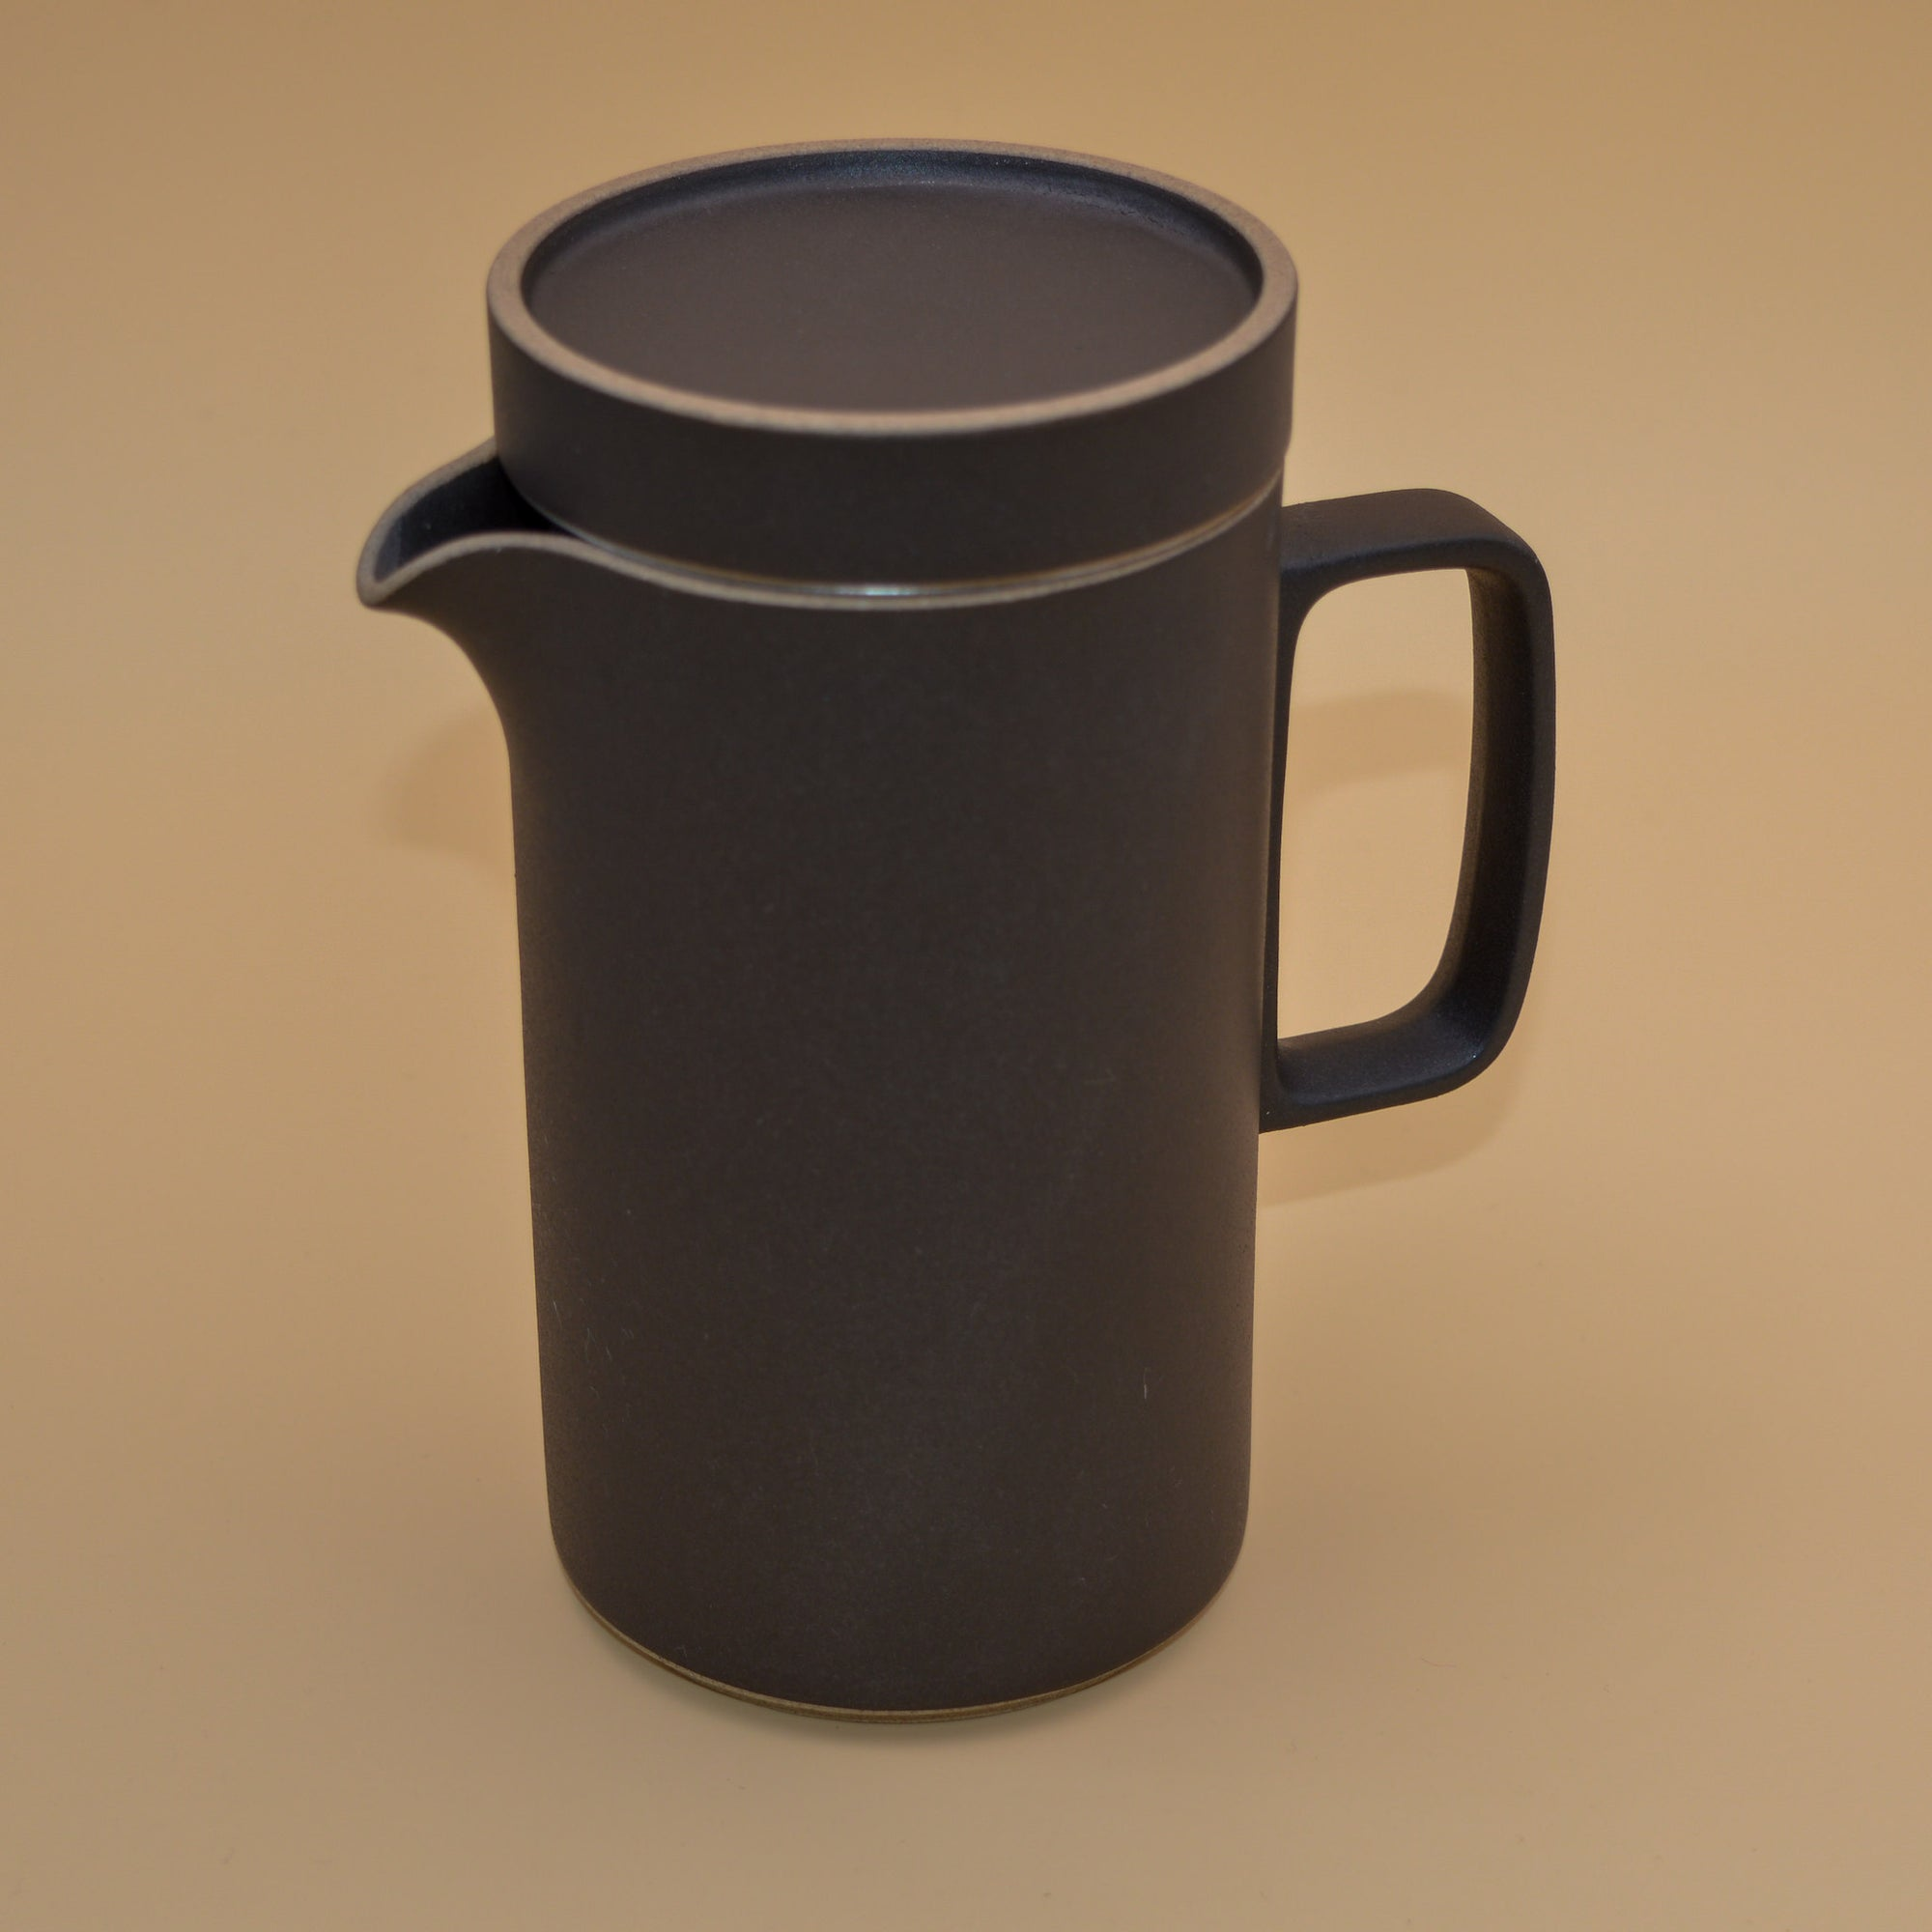 Hasami Porcelain Coffee Pot (black)